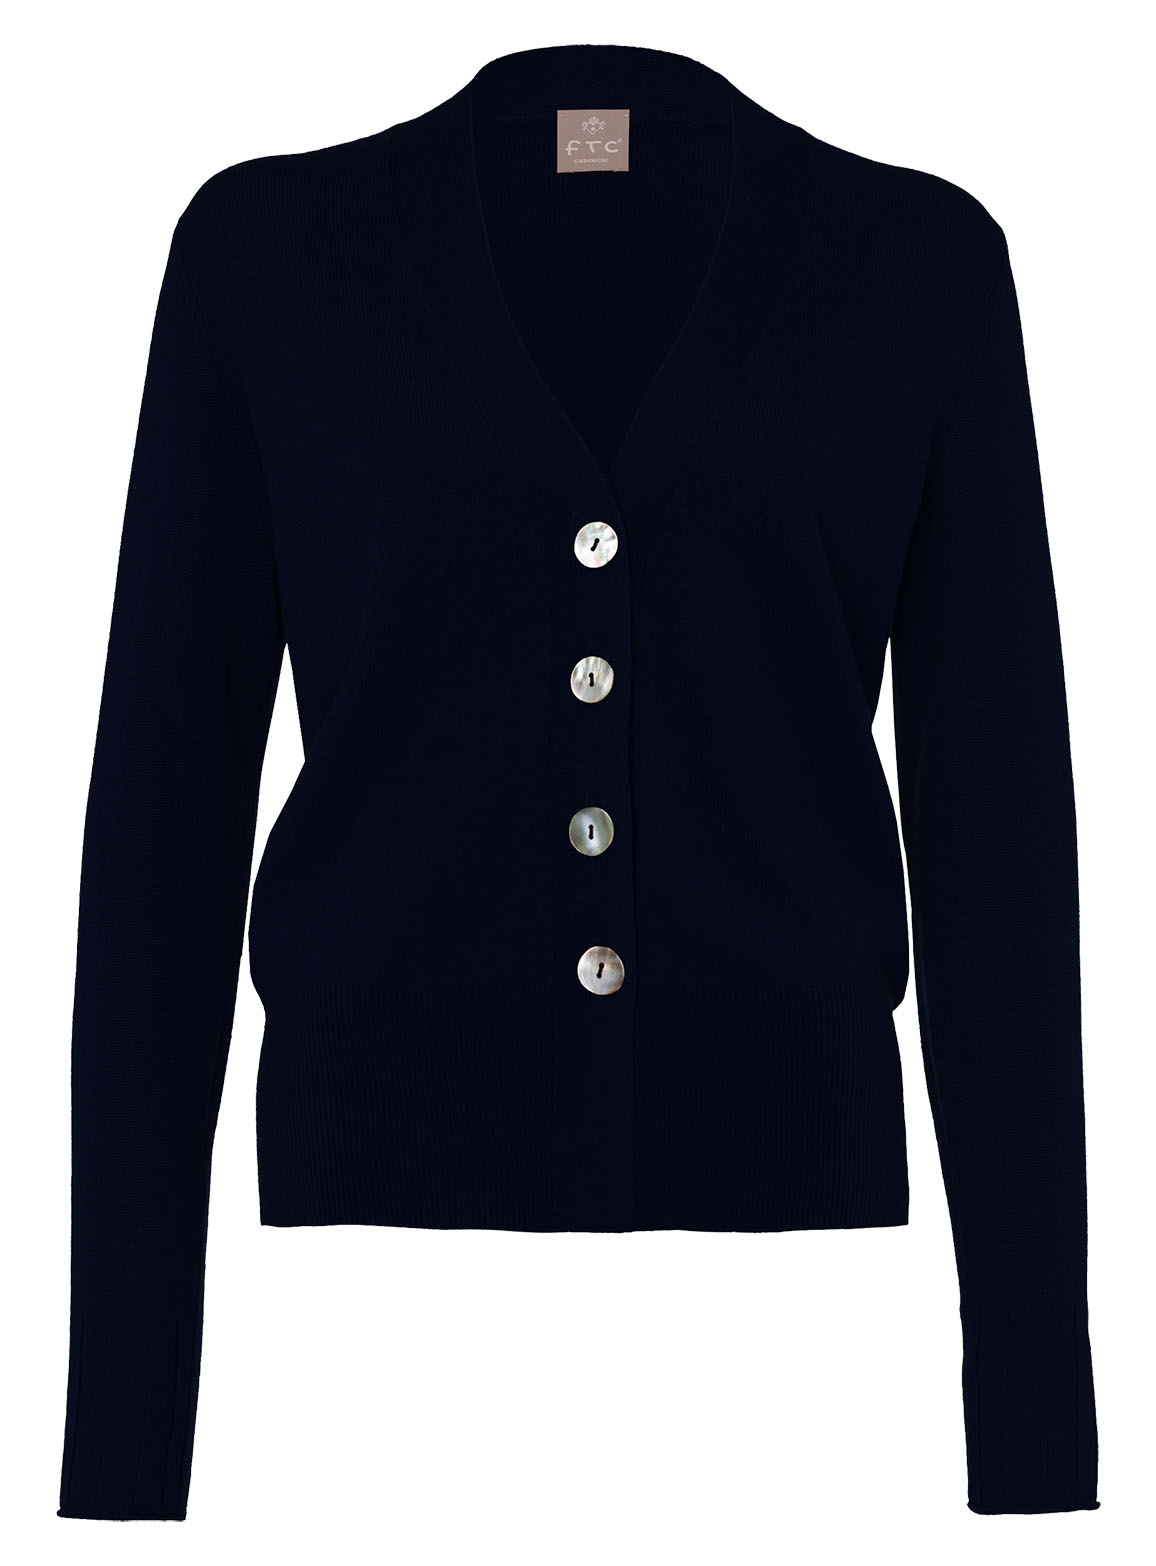 Cardigan with large shell buttons